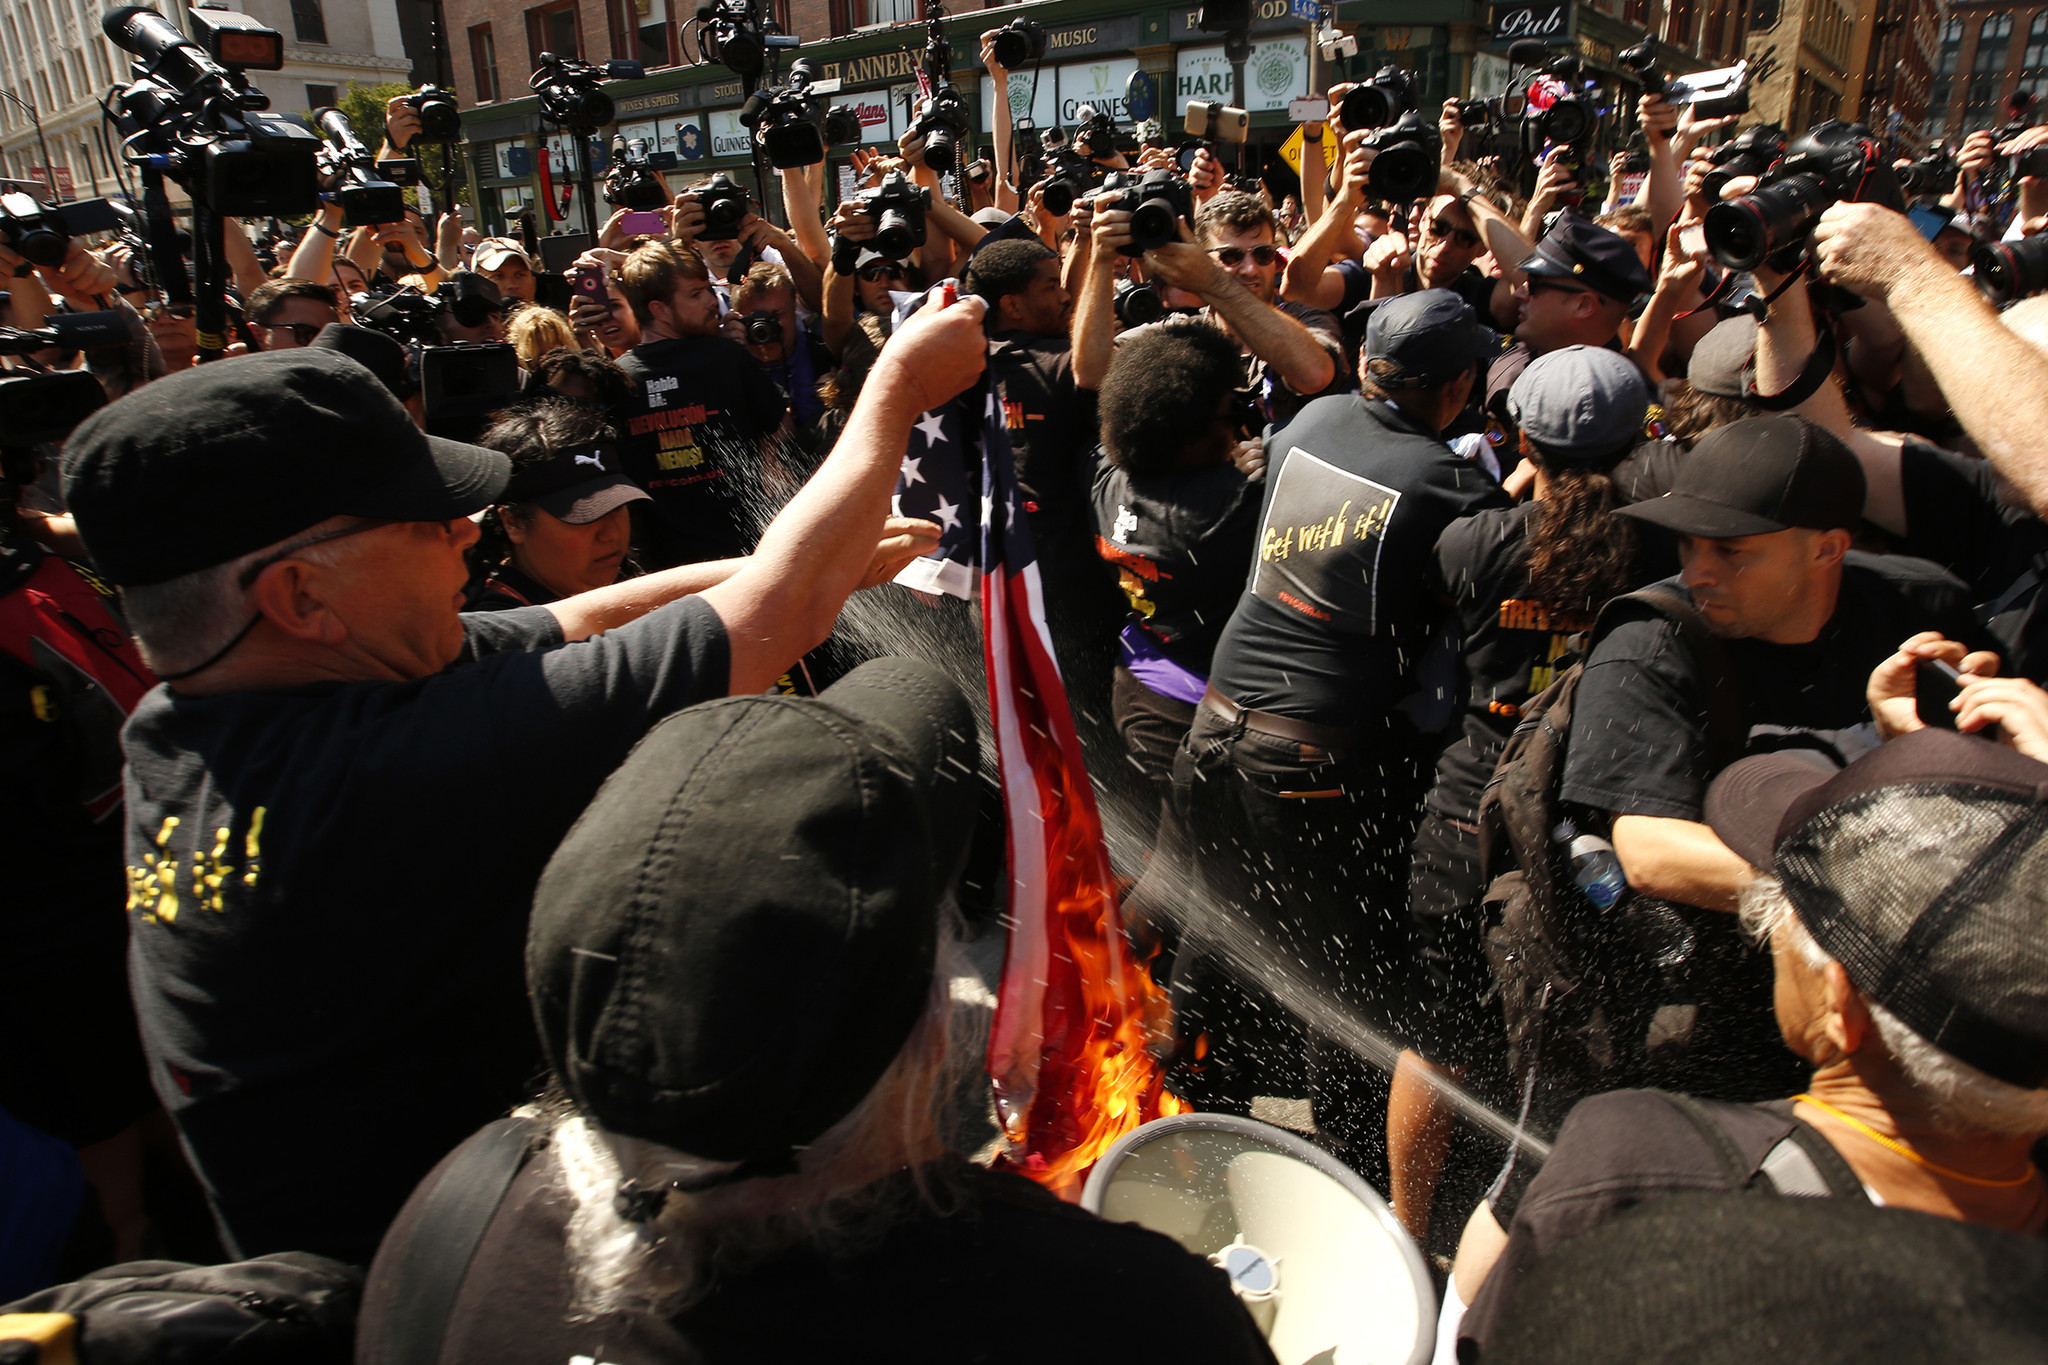 Police arrest protesters from the Revolutionary Communist Party as they burned an American flag.